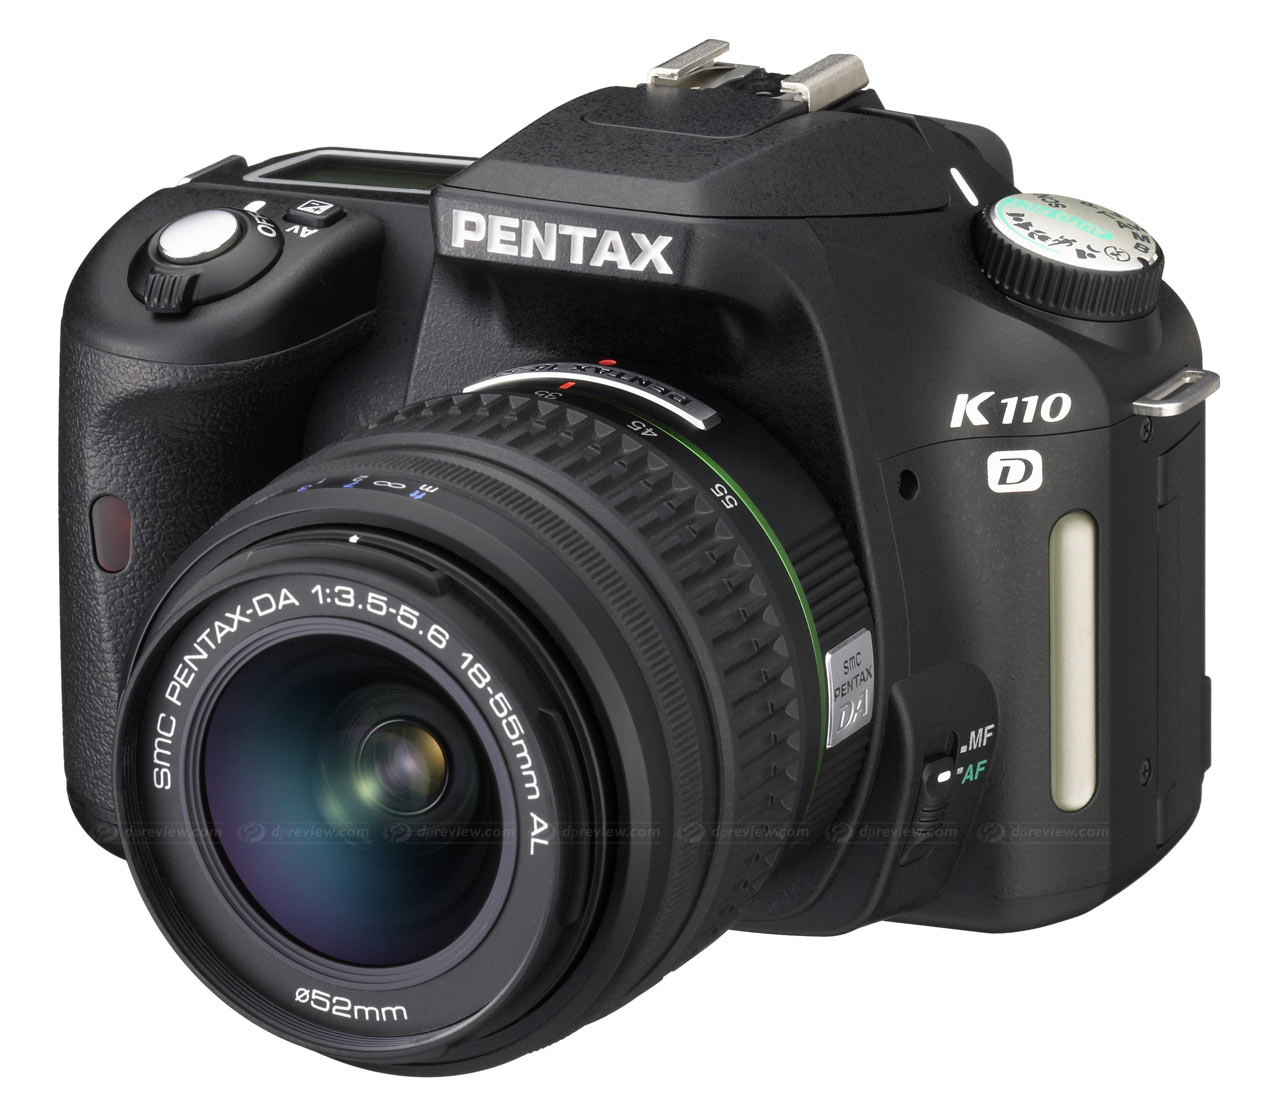 PENTAX K110D Firmware Version 1.01 and 1.02 Download